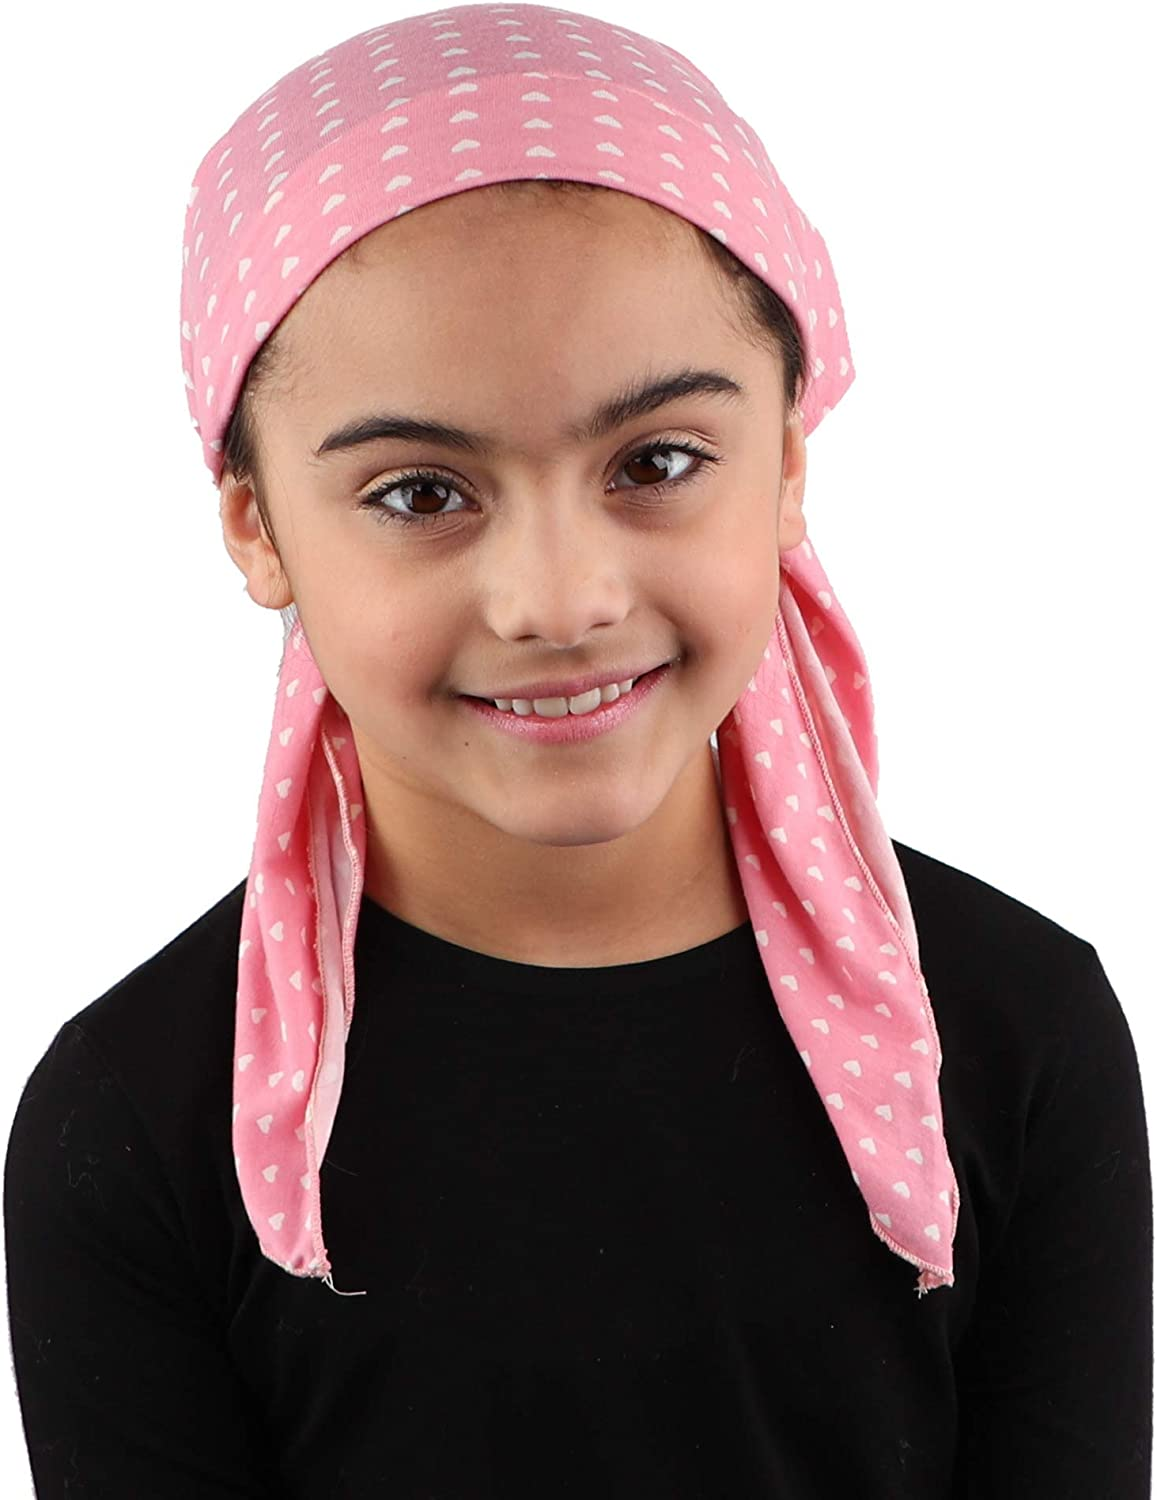 Kids Pretied Head Scarf Cancer Chemo Cap Printed Headcover for Girls